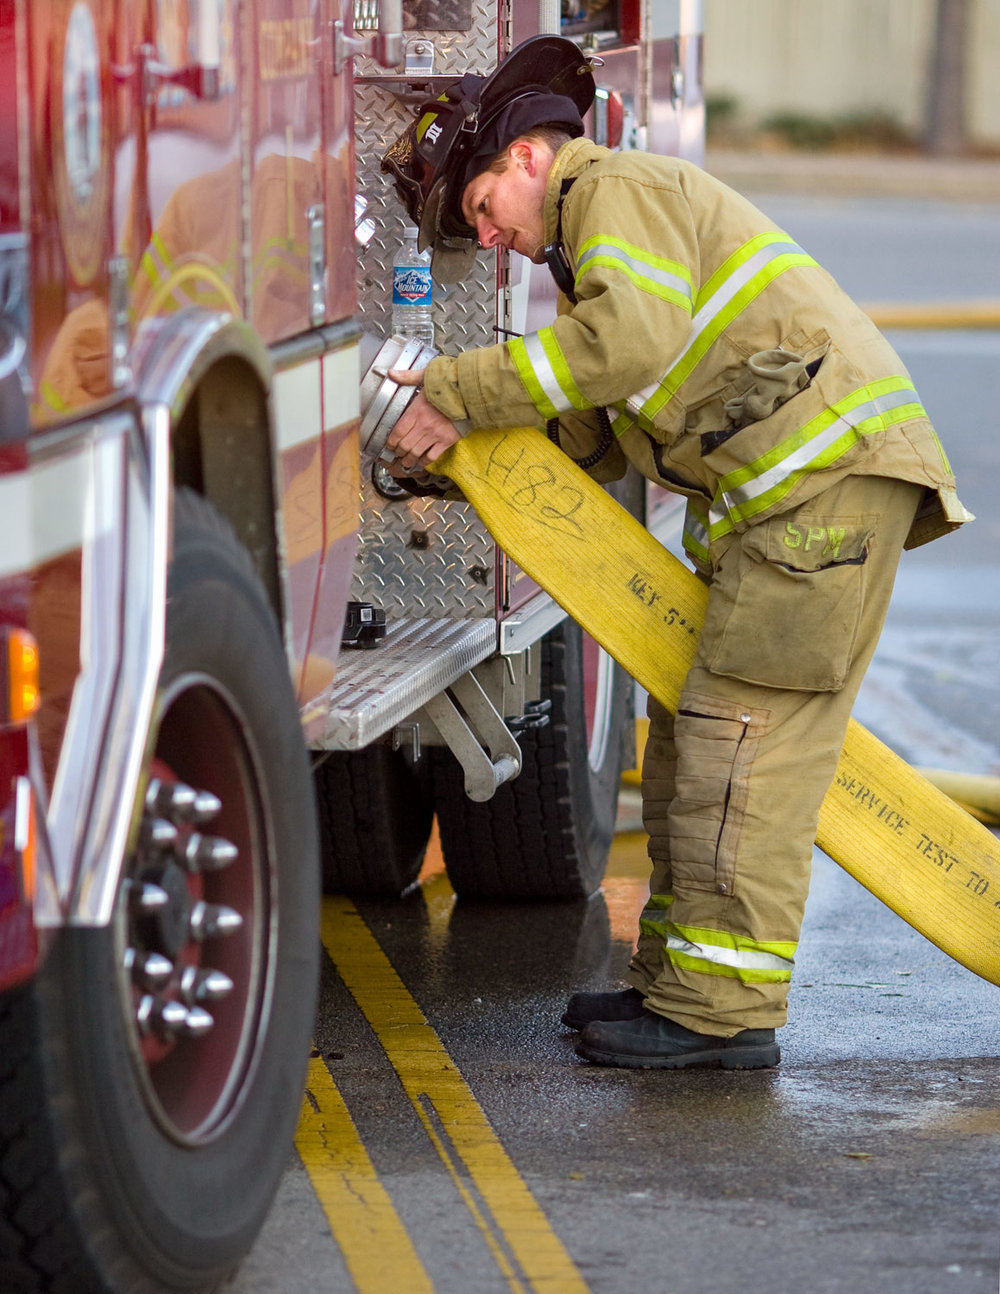 Attaching a Hose